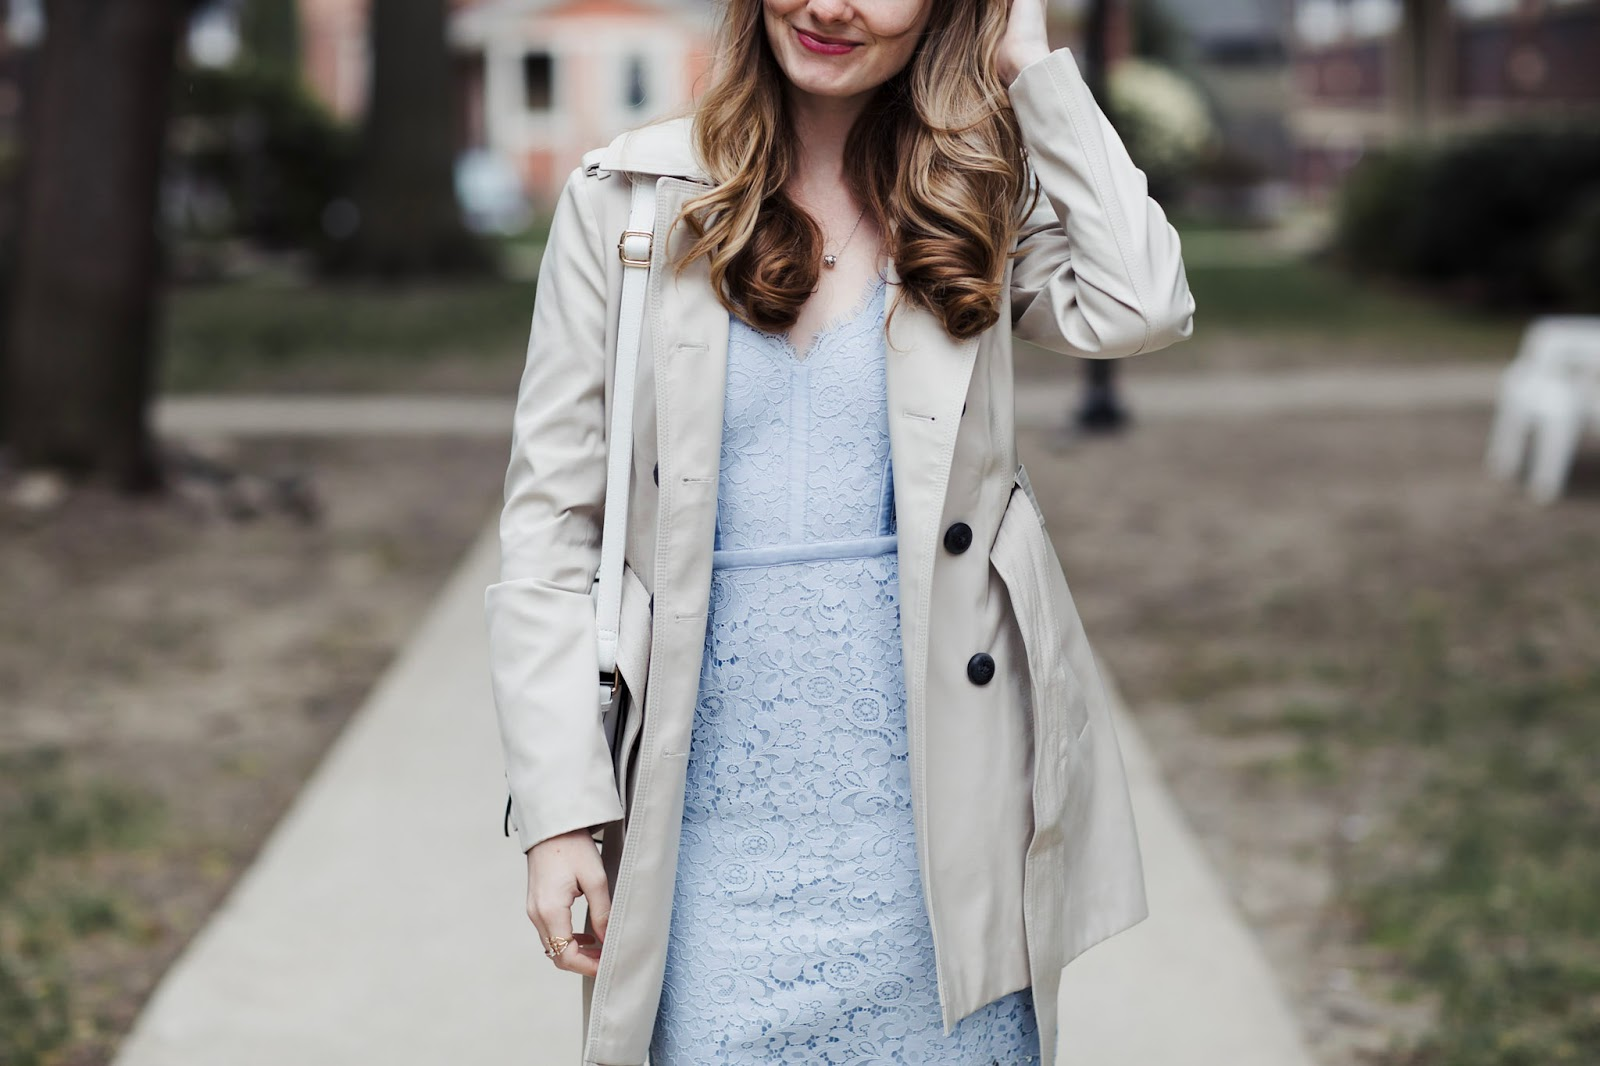 Blue-Lace-Dress-Petite-Trench-Coat